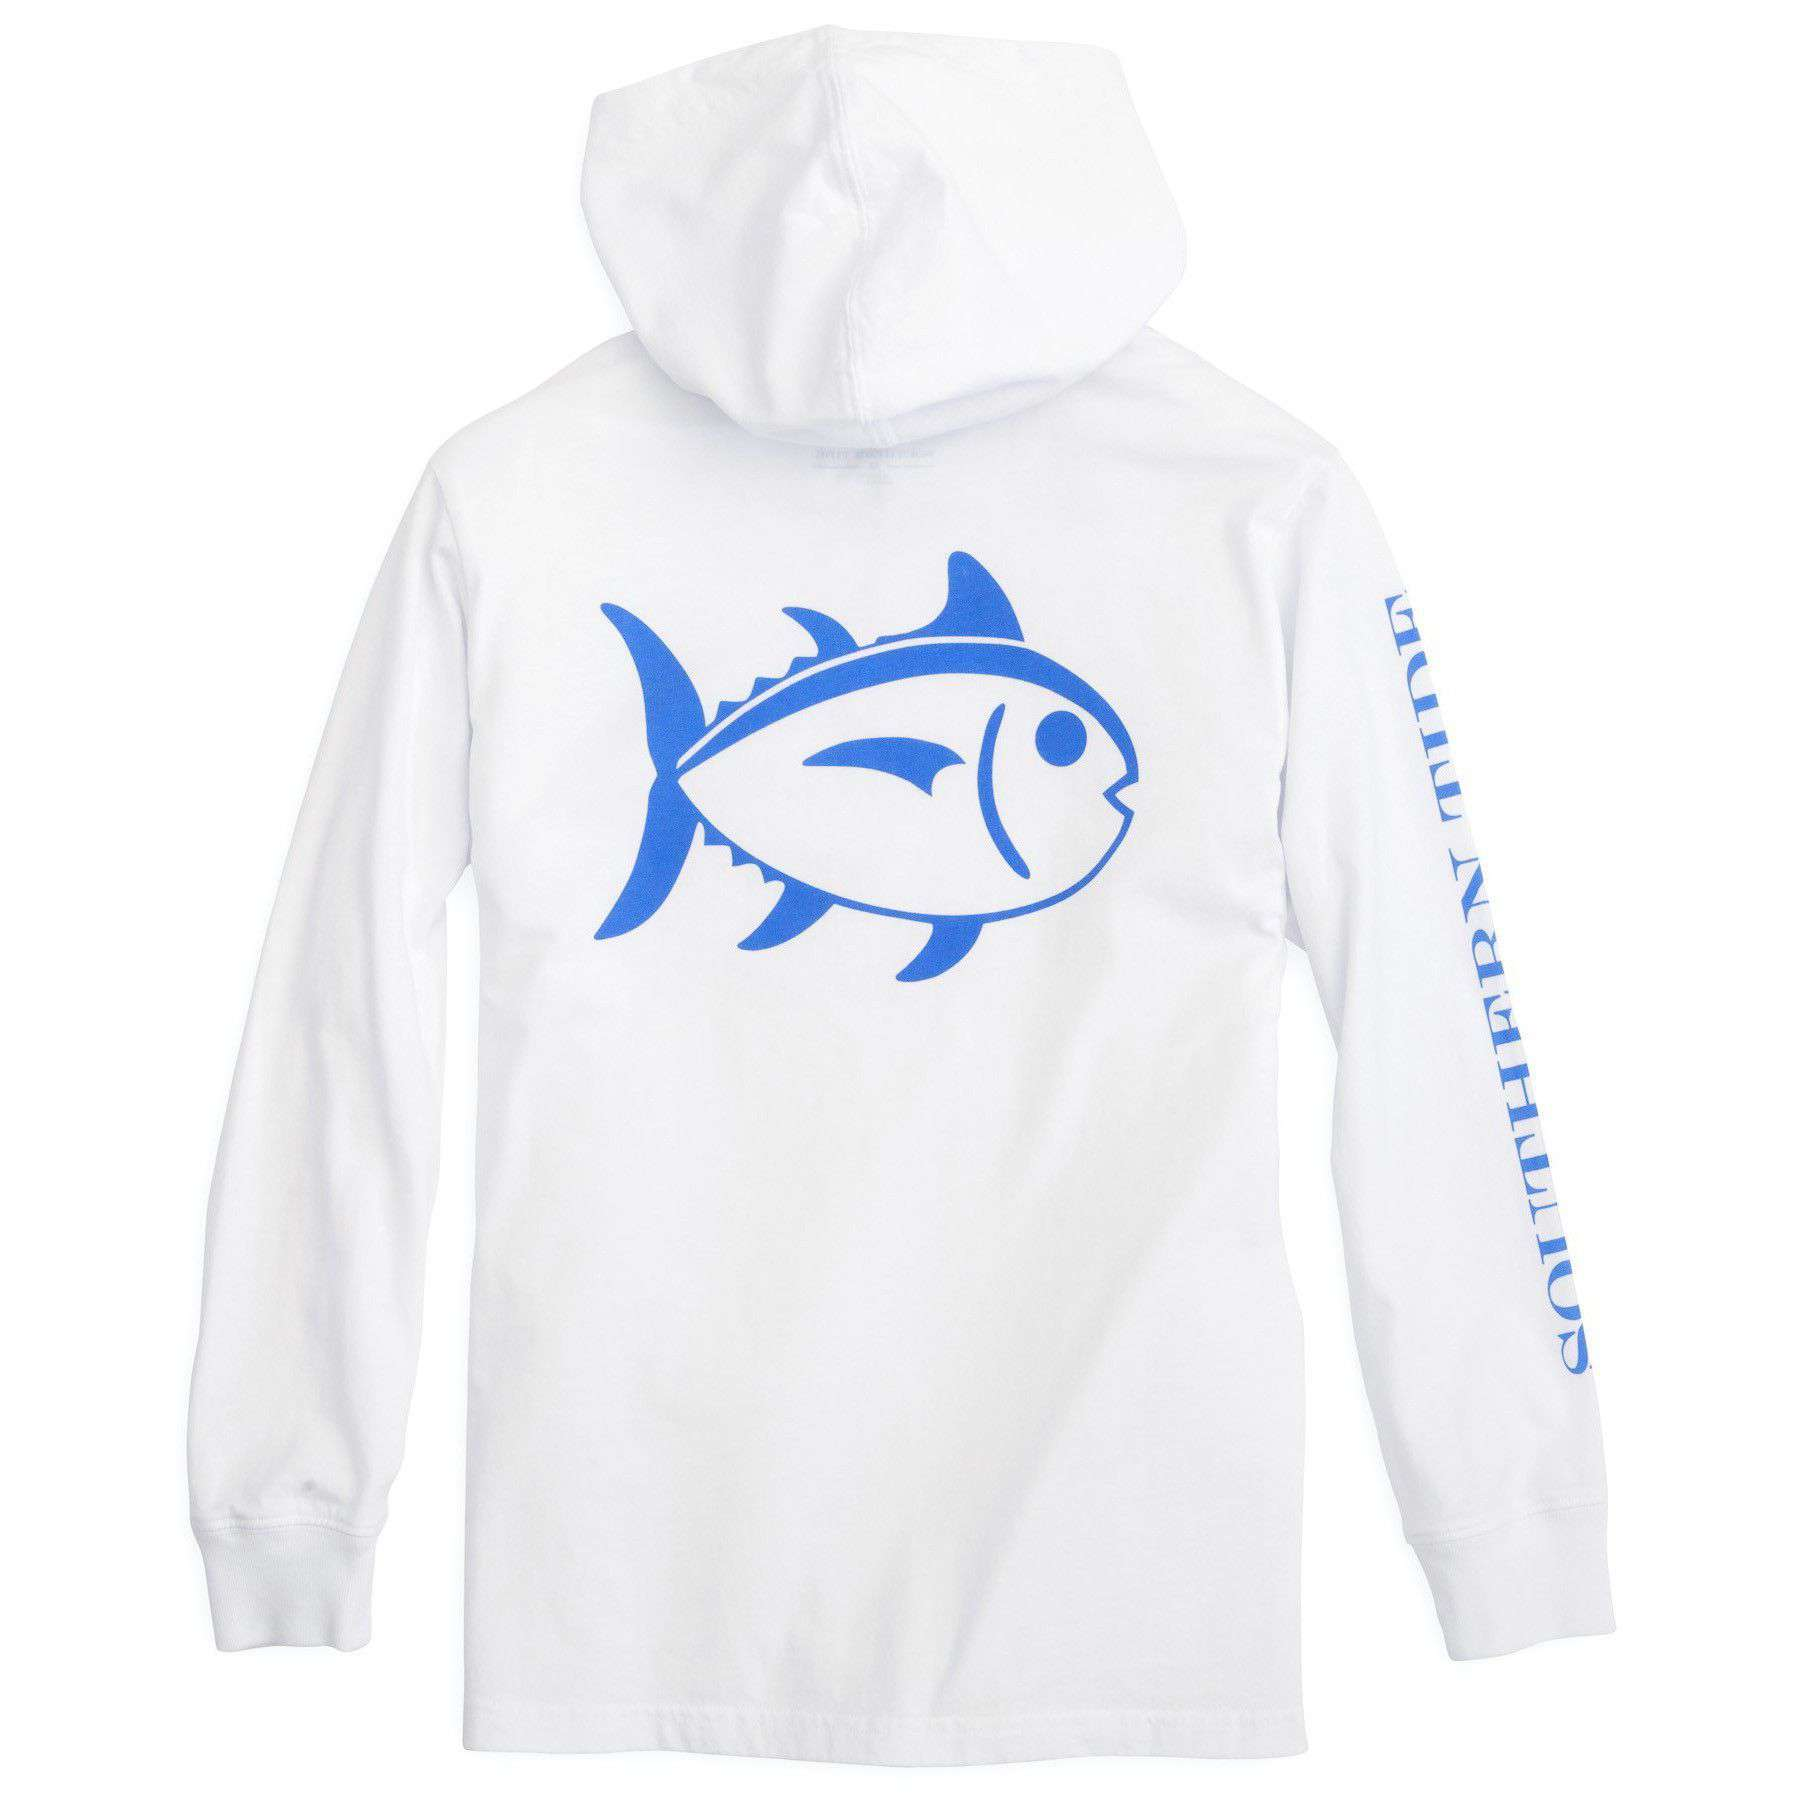 Tee Shirts - Kids Skipjack Long Sleeve Hoodie T-Shirt In Classic White By Southern Tide